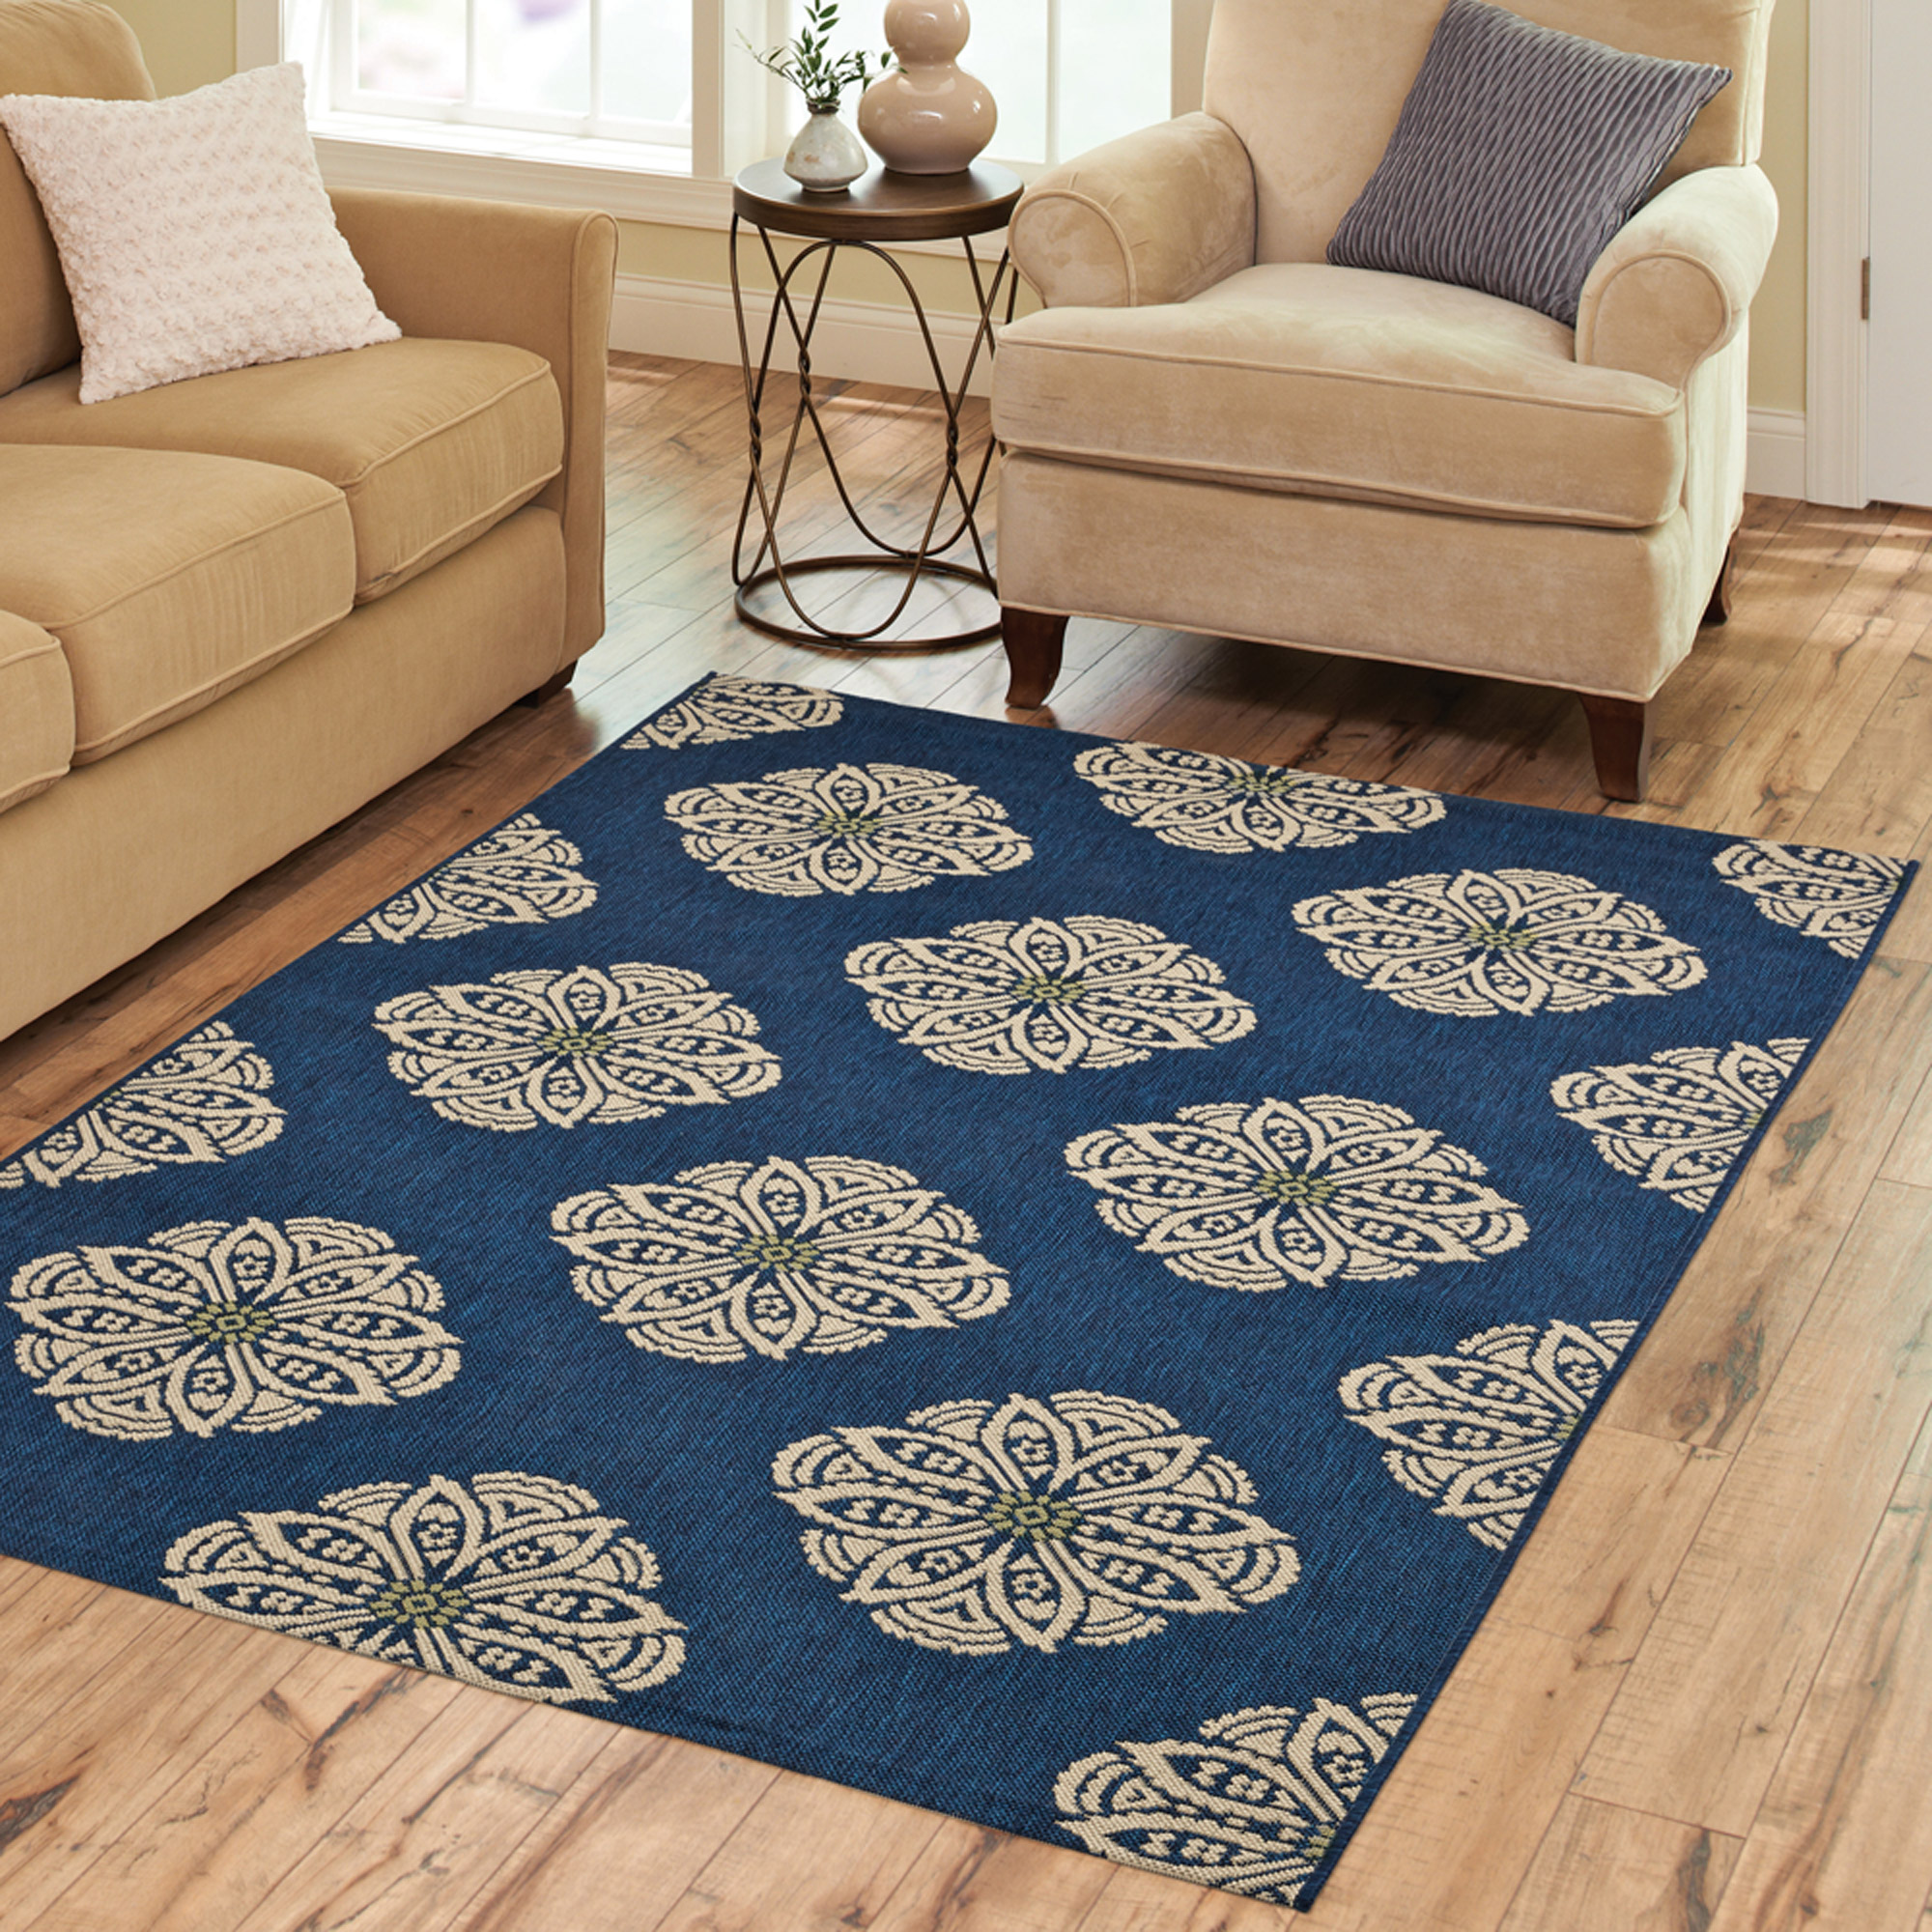 Better Homes and Gardens Medallion Indoor/Outdoor Polypropylene Area Rug